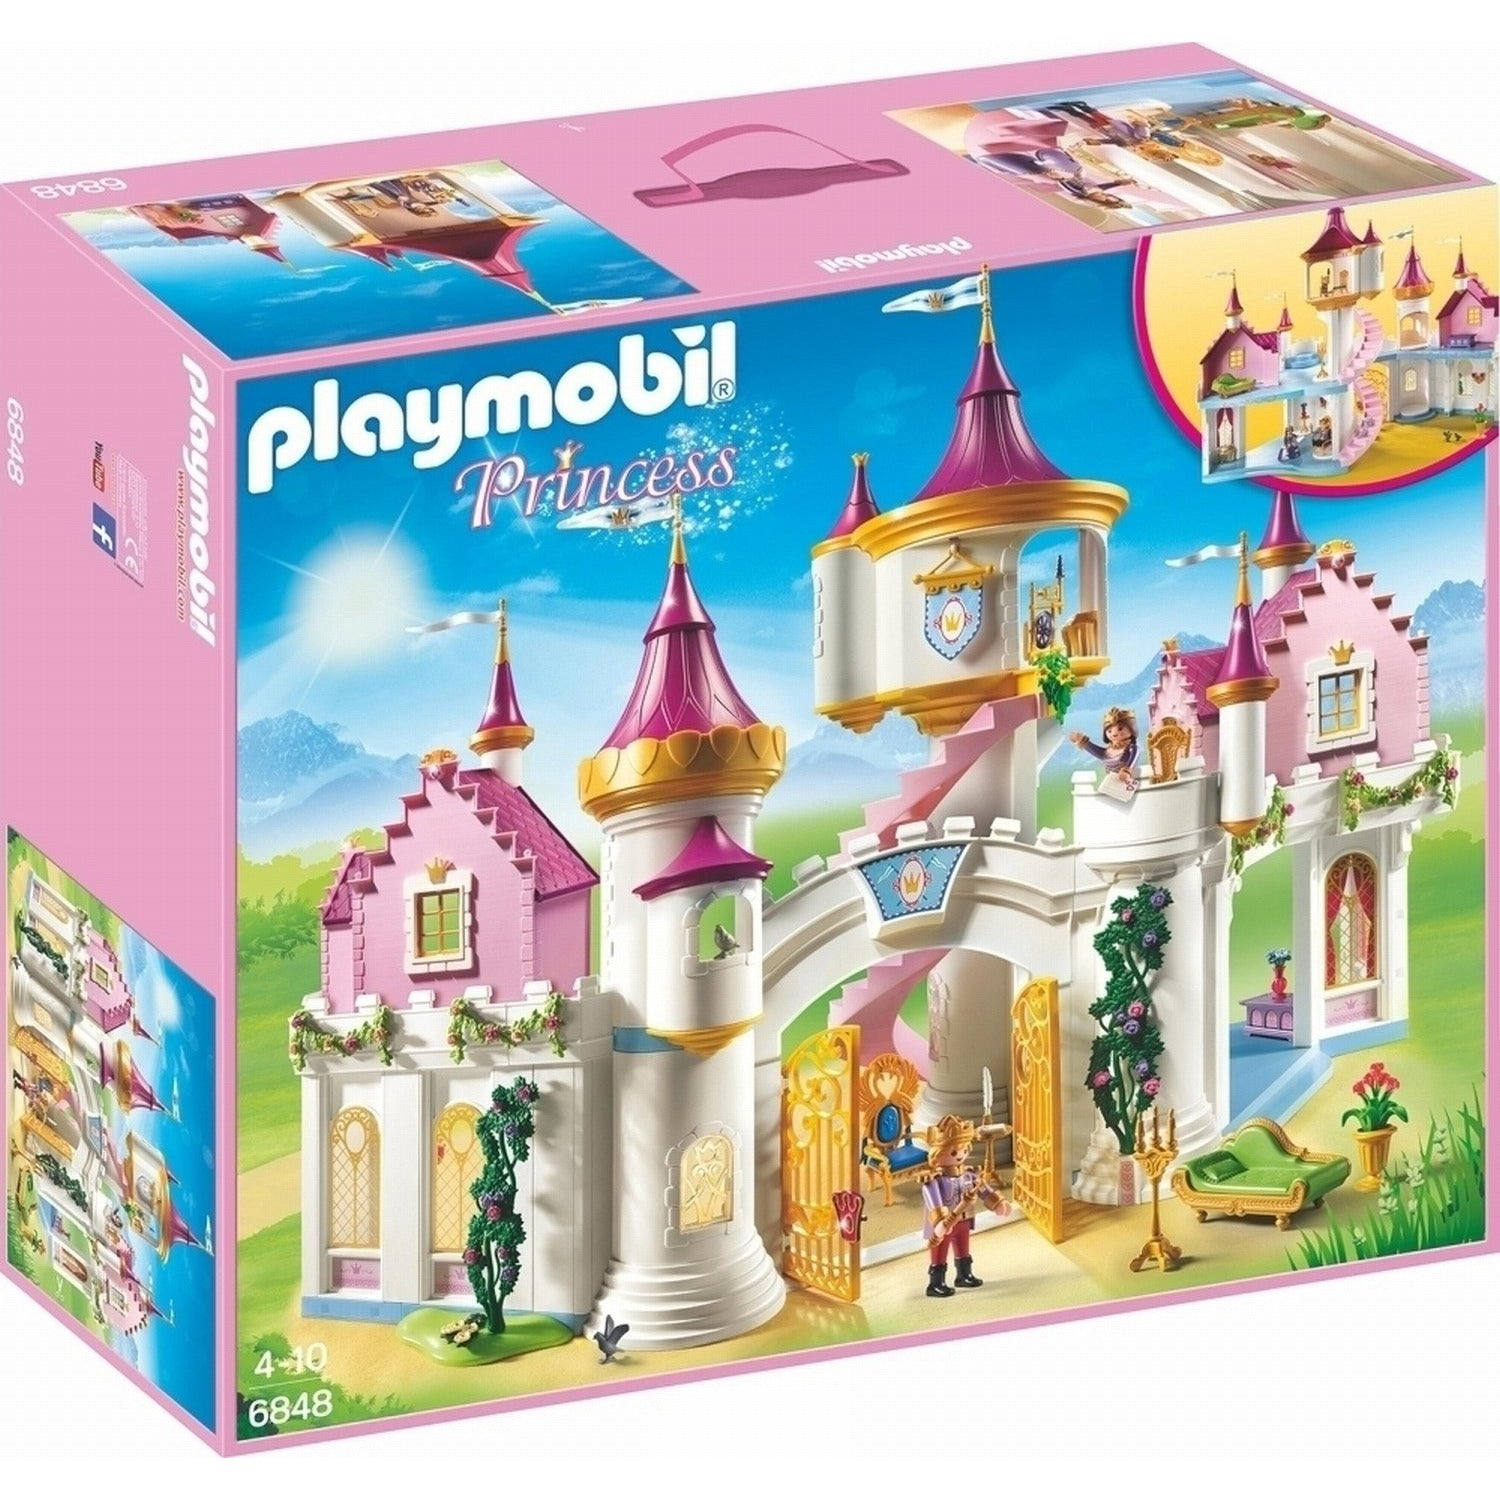 PLAYMOBIL PRINCESS 6848 - Wild Willy